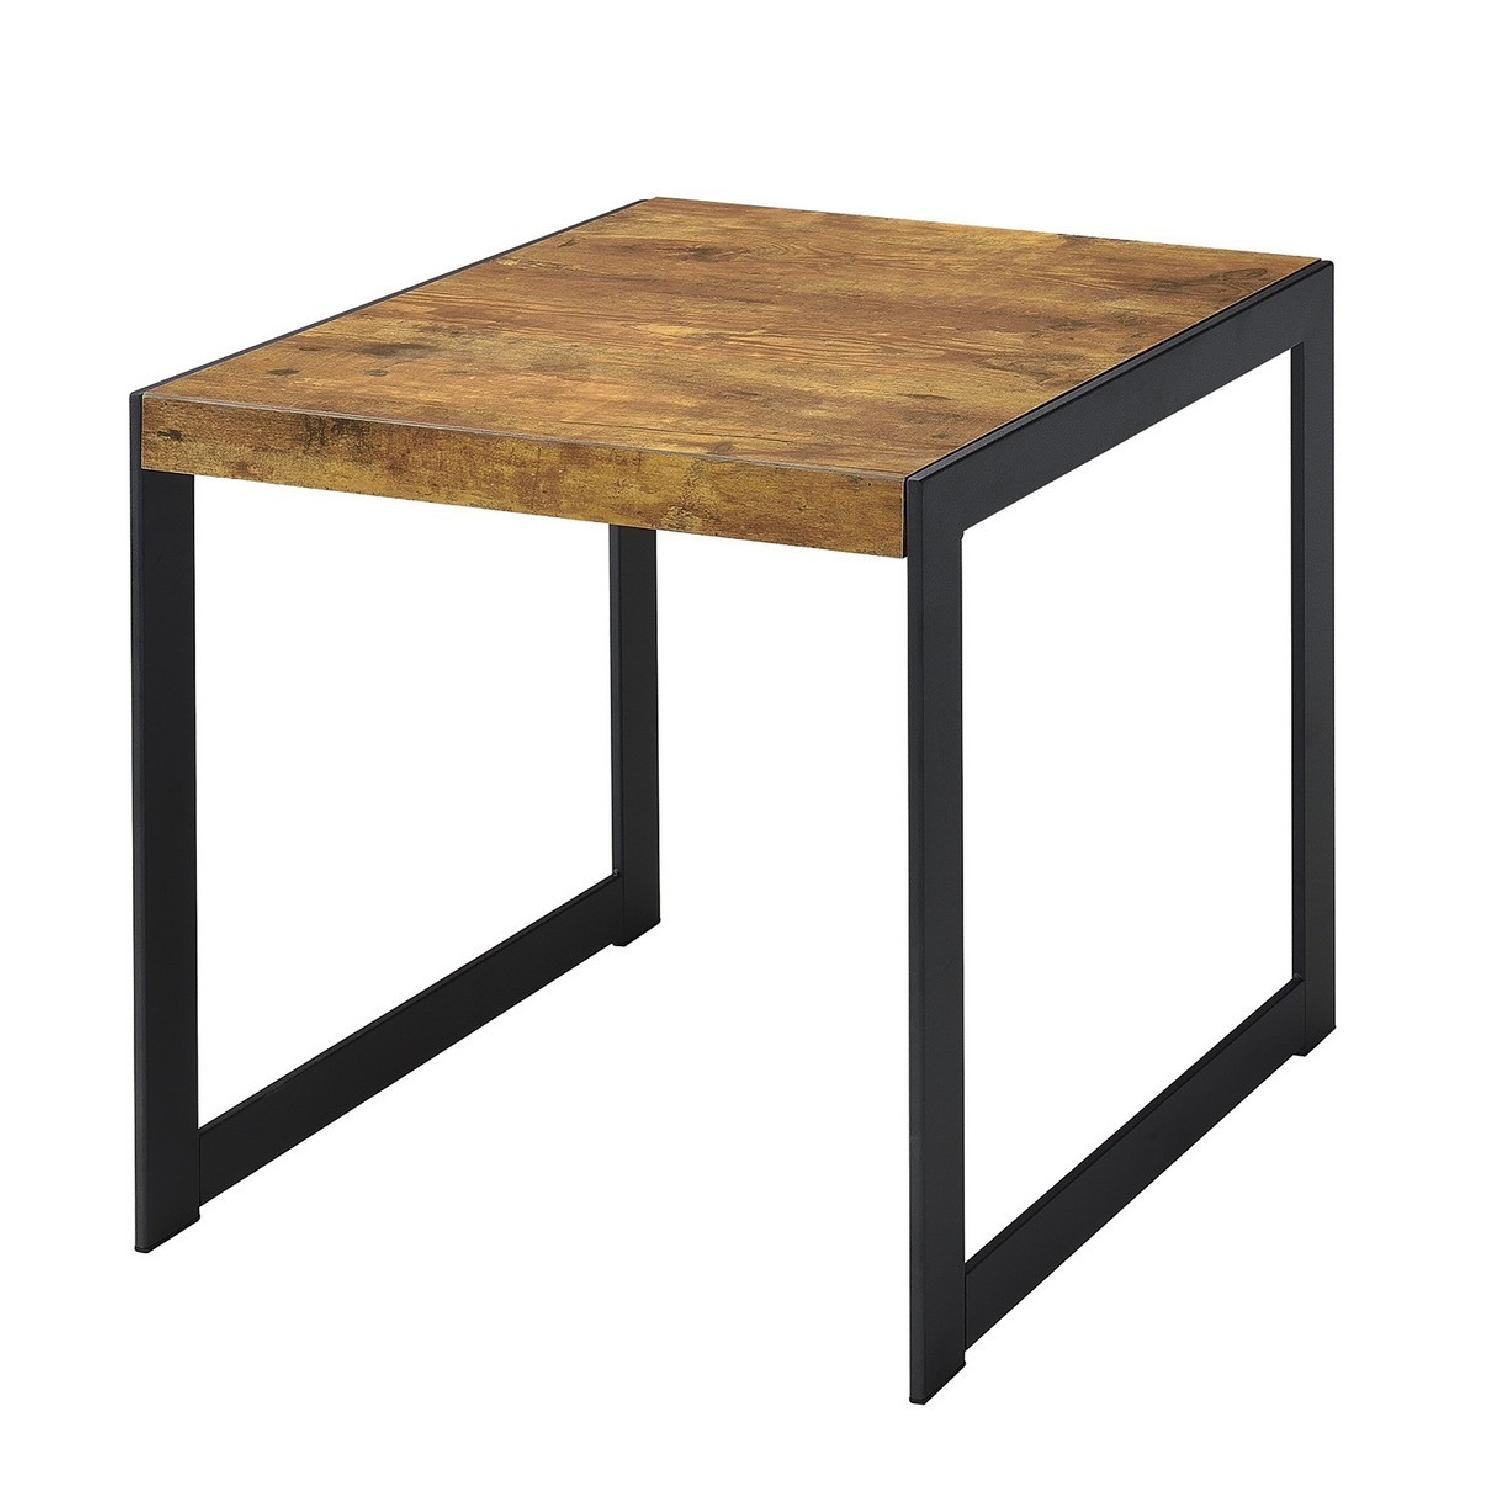 Rustic Style Side Table In Antique Nutmeg Finished Top & Gunmetal Frame